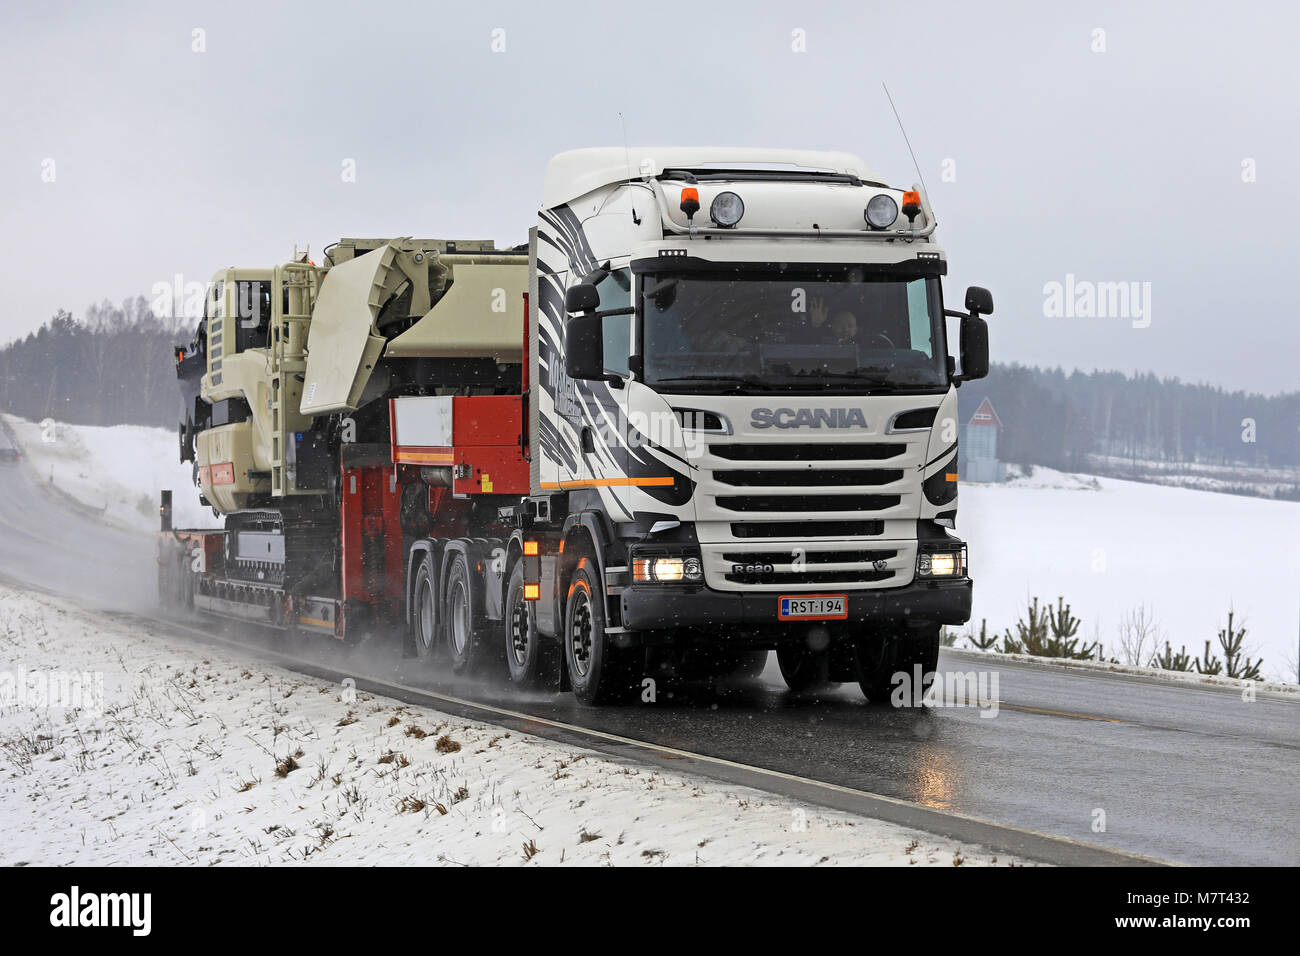 Vehicle Truck Oversize Load In Stock Photos & Vehicle Truck Oversize Load In Stock Images - Alamy